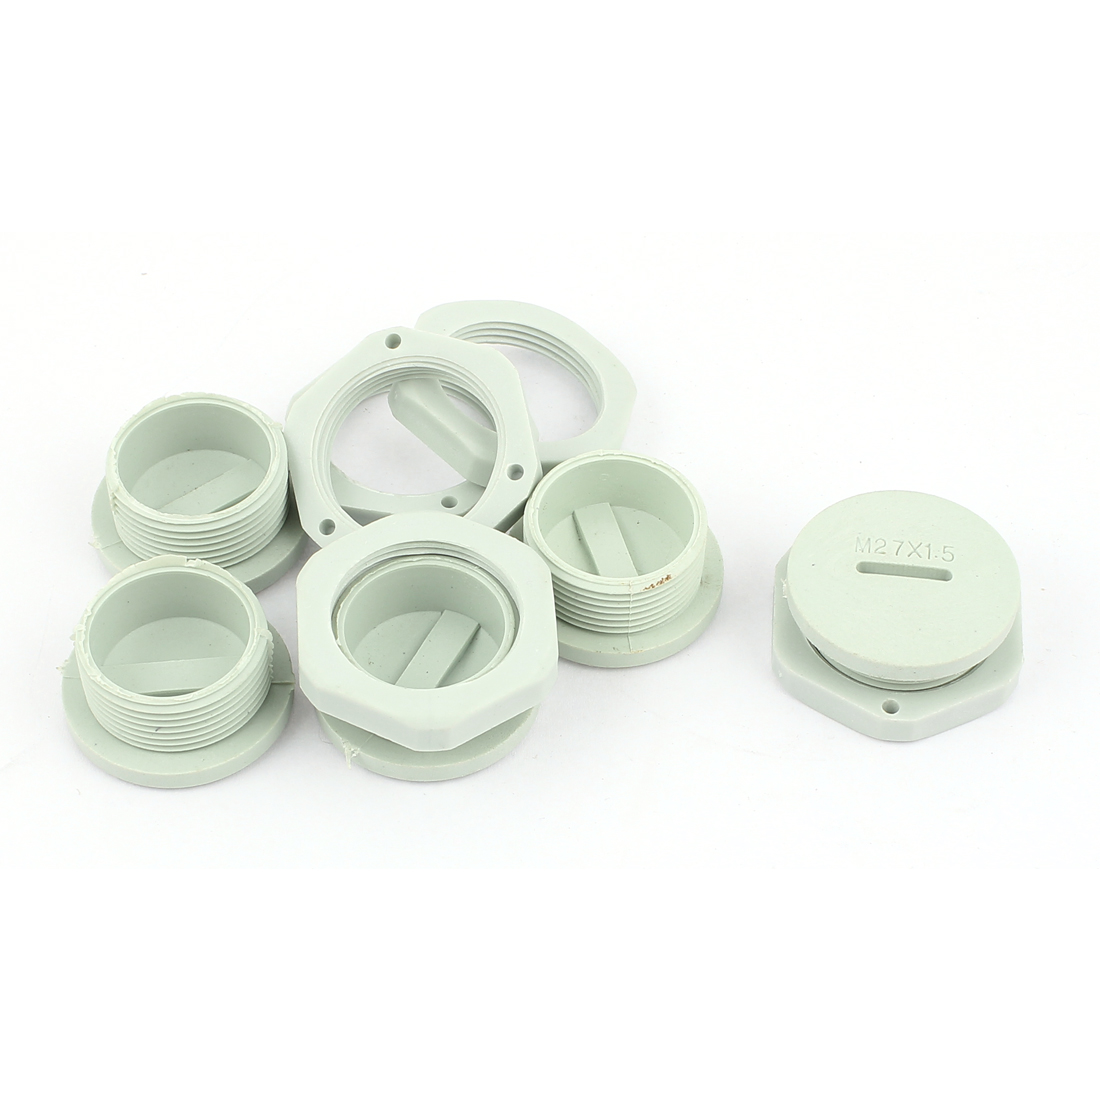 M27 x 1.5cm Plastic Round Head Pipe Adapter White 5Pcs